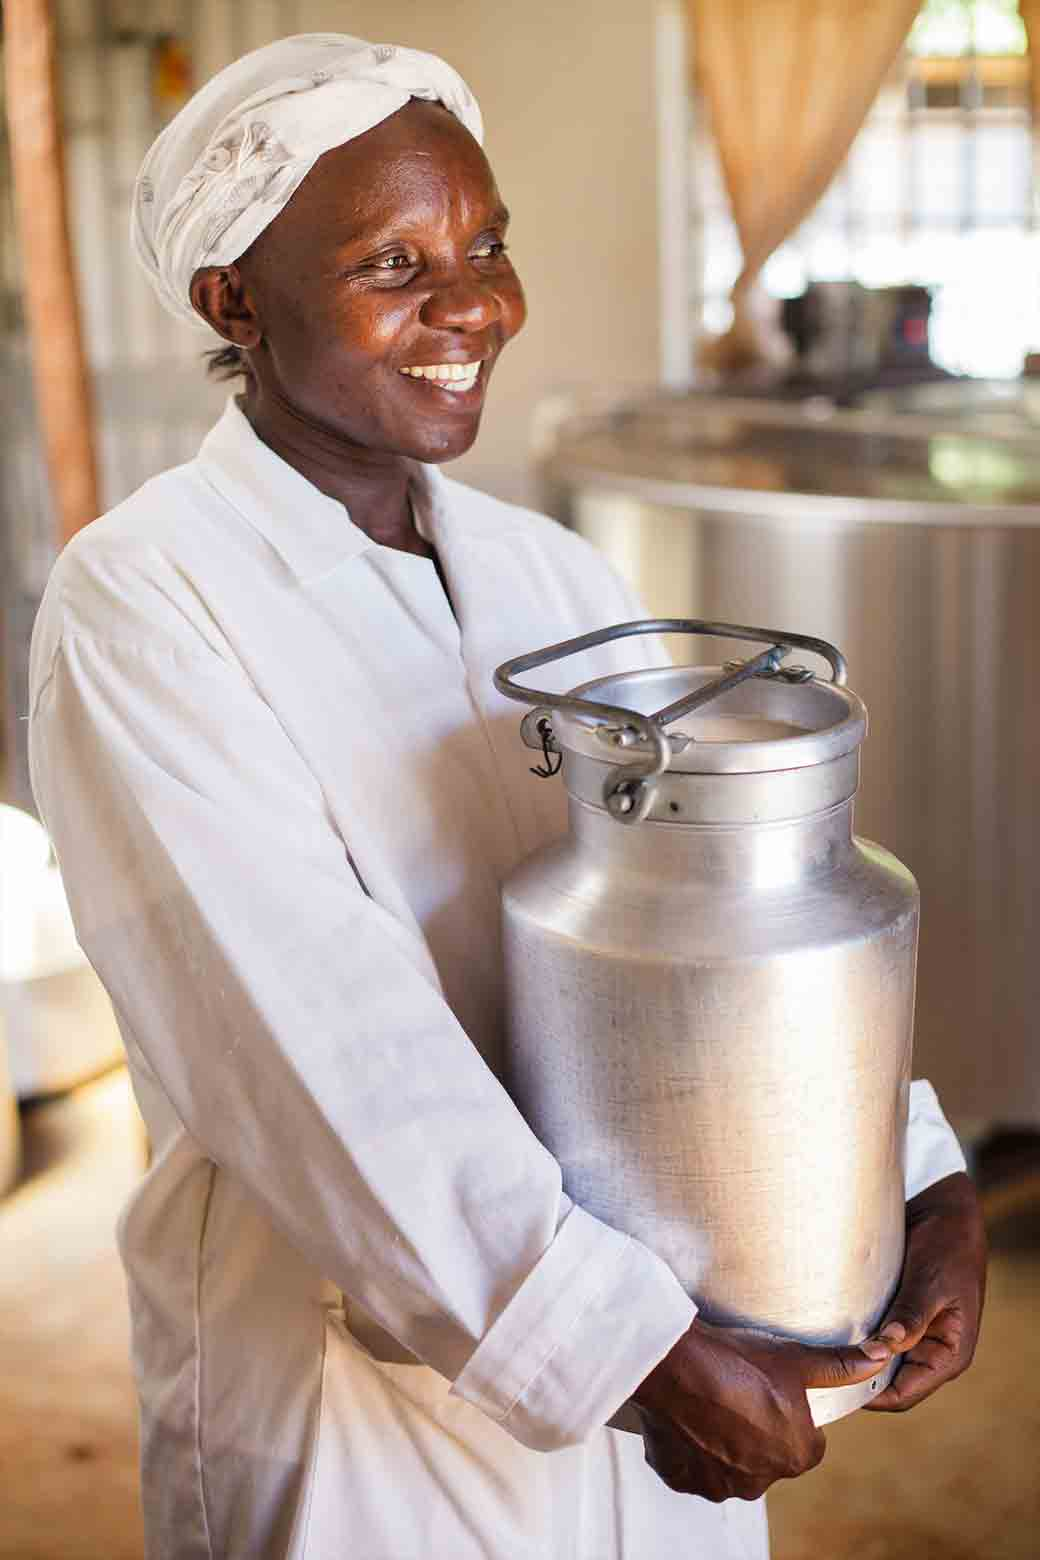 A member of the Ahero Dairy Farmers cooperative in Kisumu, Kenya carries fresh milk that will be turned into yogurt for sale through the cooperative's store.